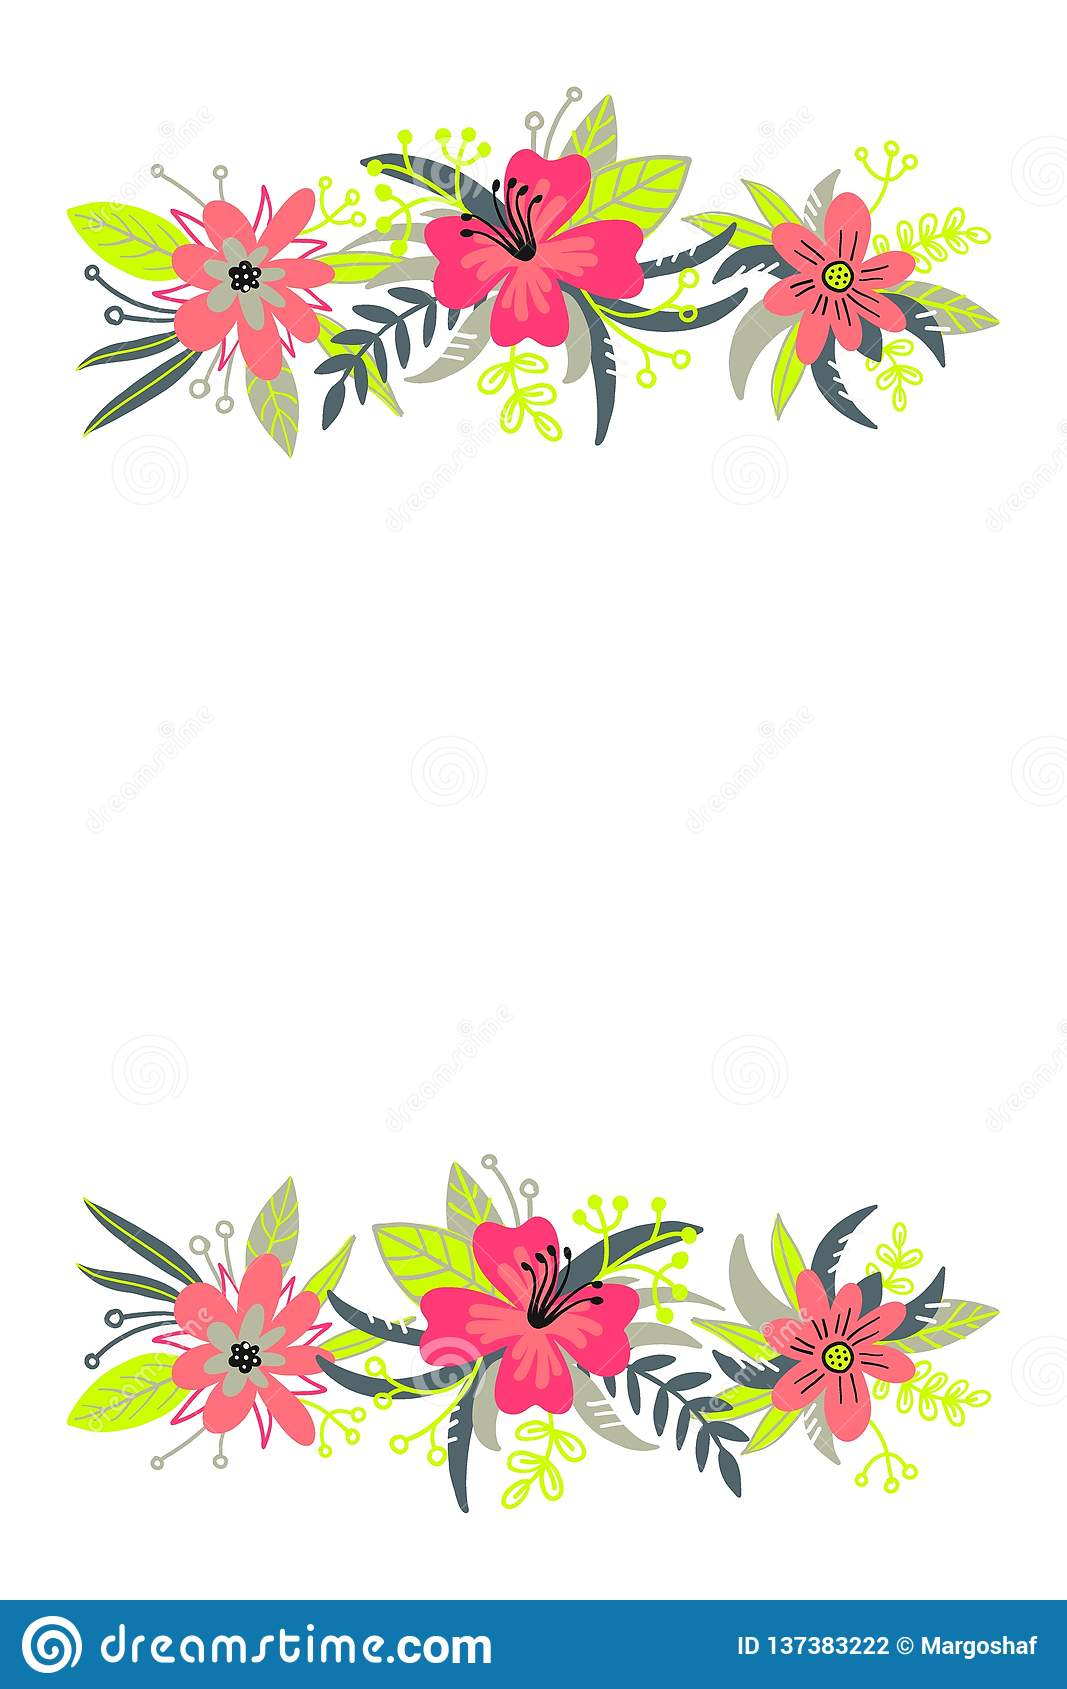 Hand drawn spring typography poster with cute colorful flowers in flat style. Vector illustration for 8 March Woman`s Day, Mother